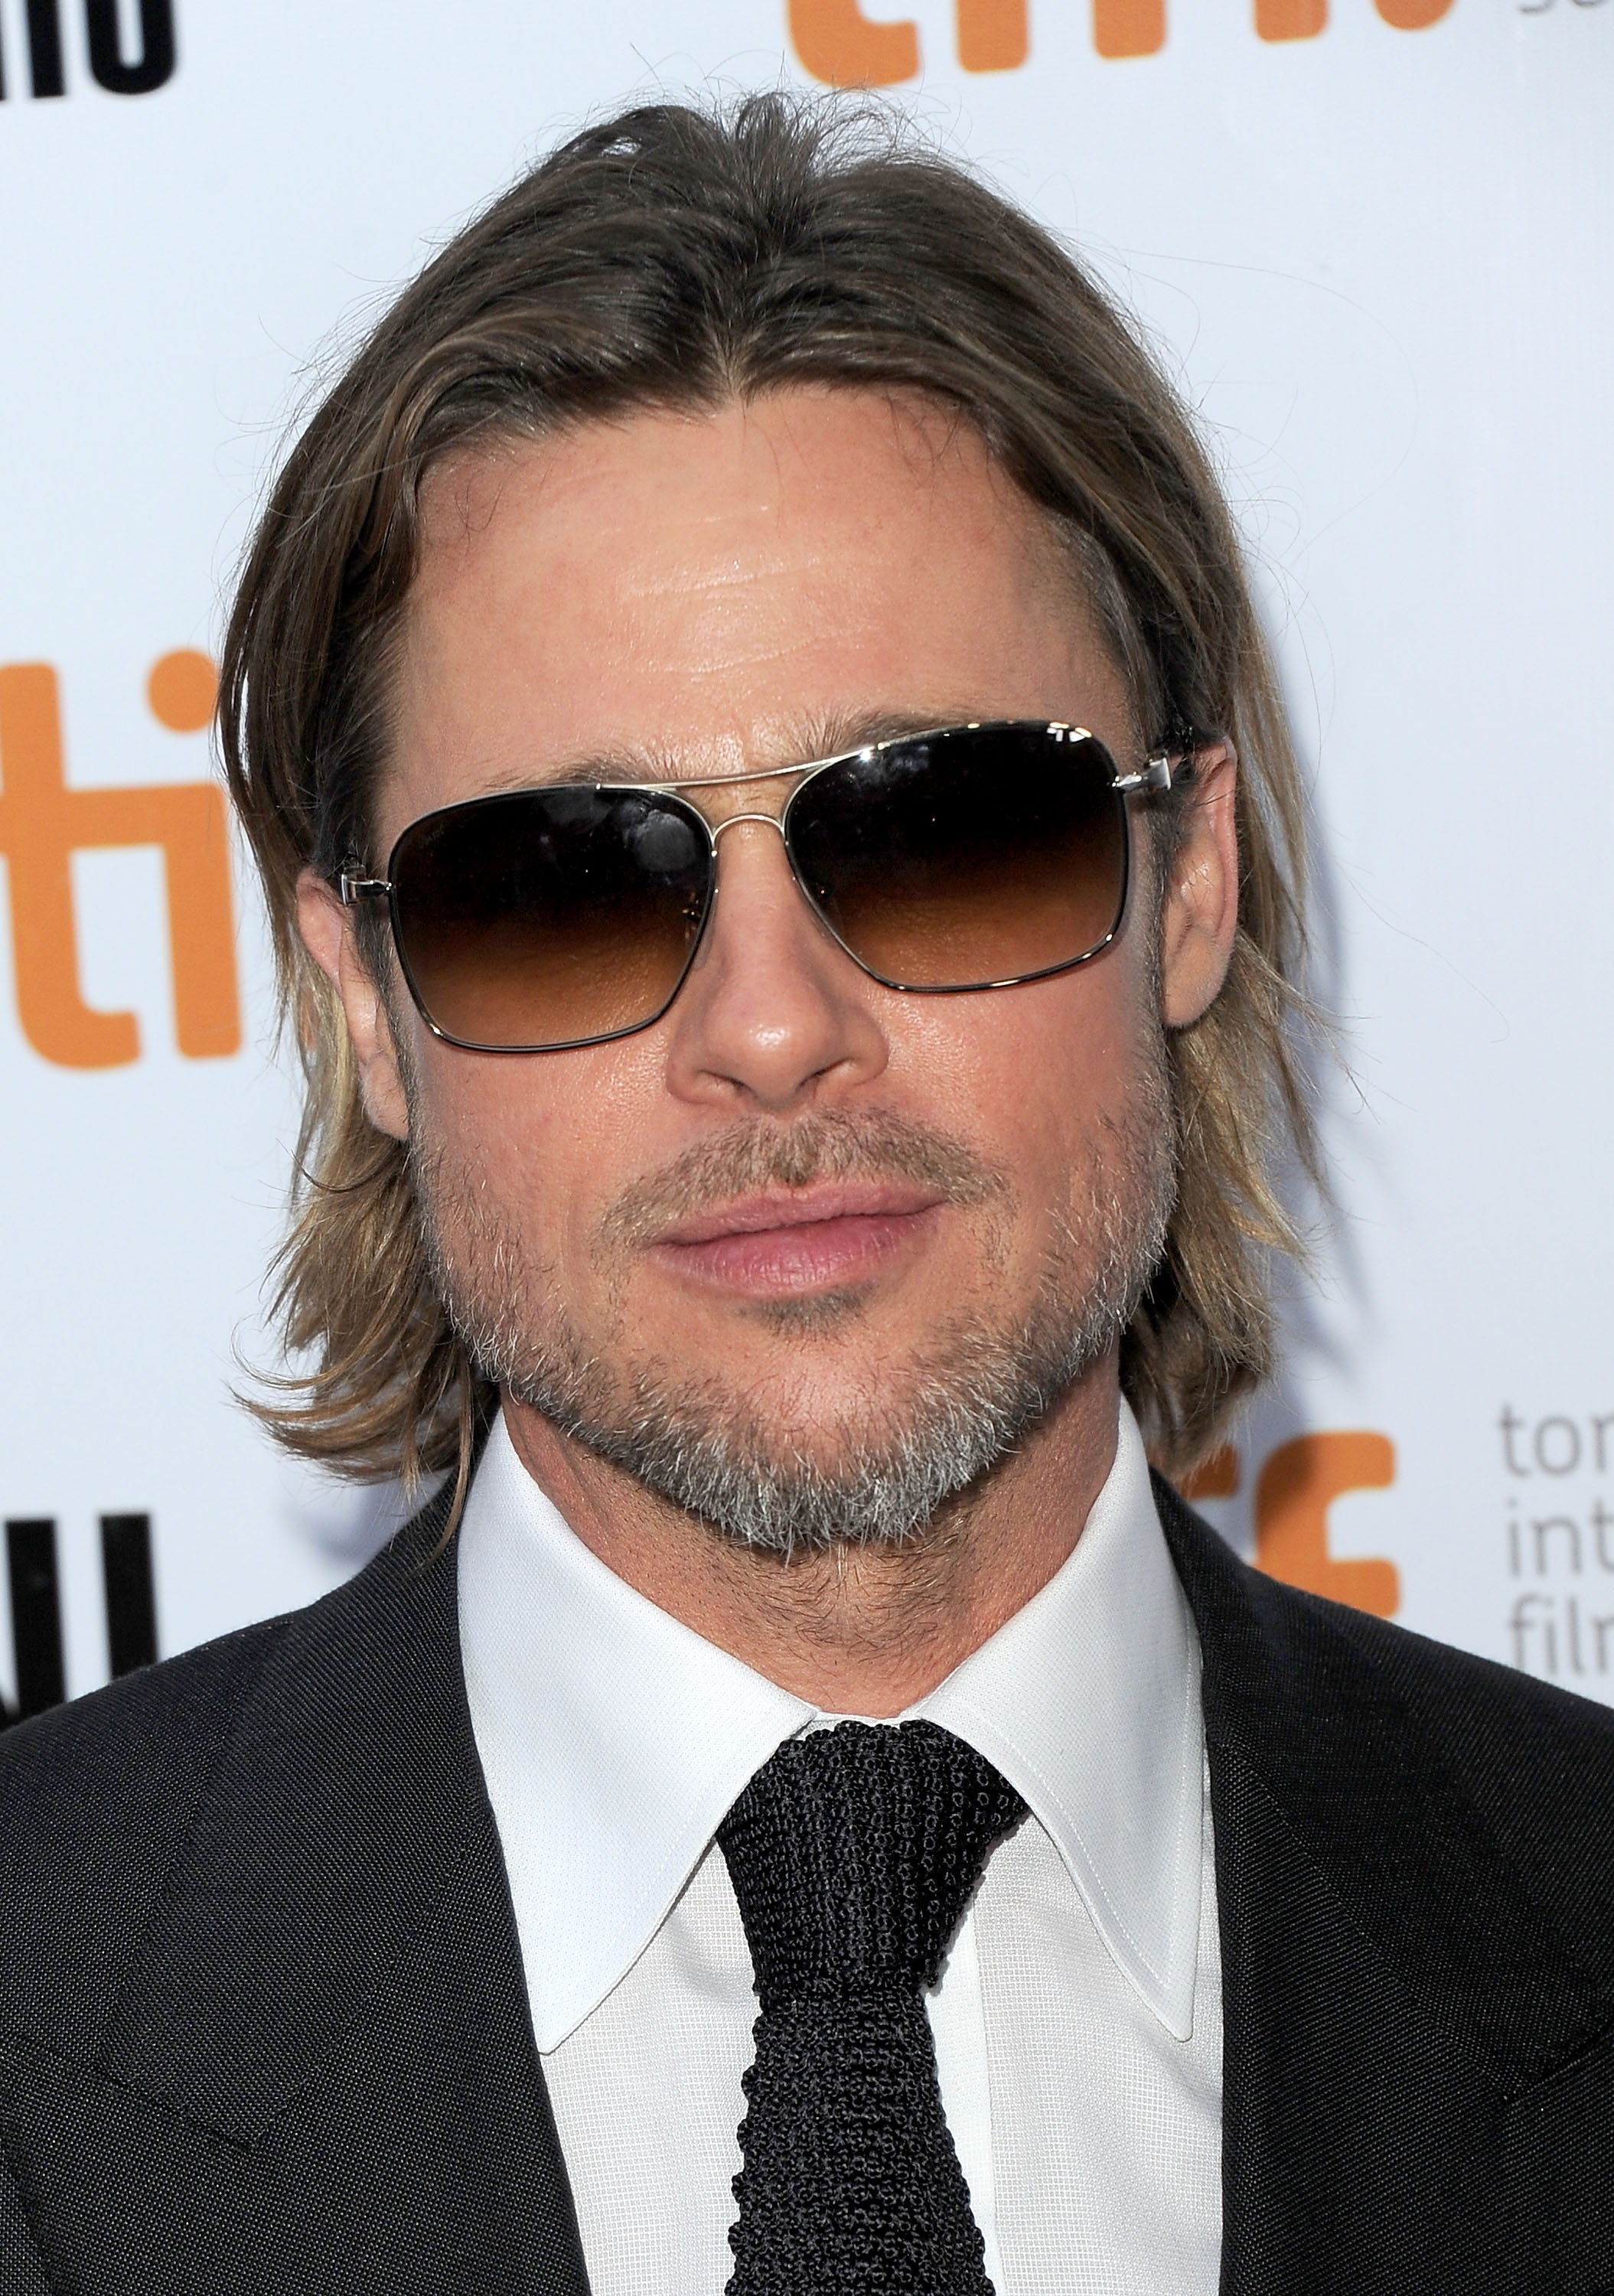 brad pitt wore sunglasses at night in toronto jennifer. Black Bedroom Furniture Sets. Home Design Ideas